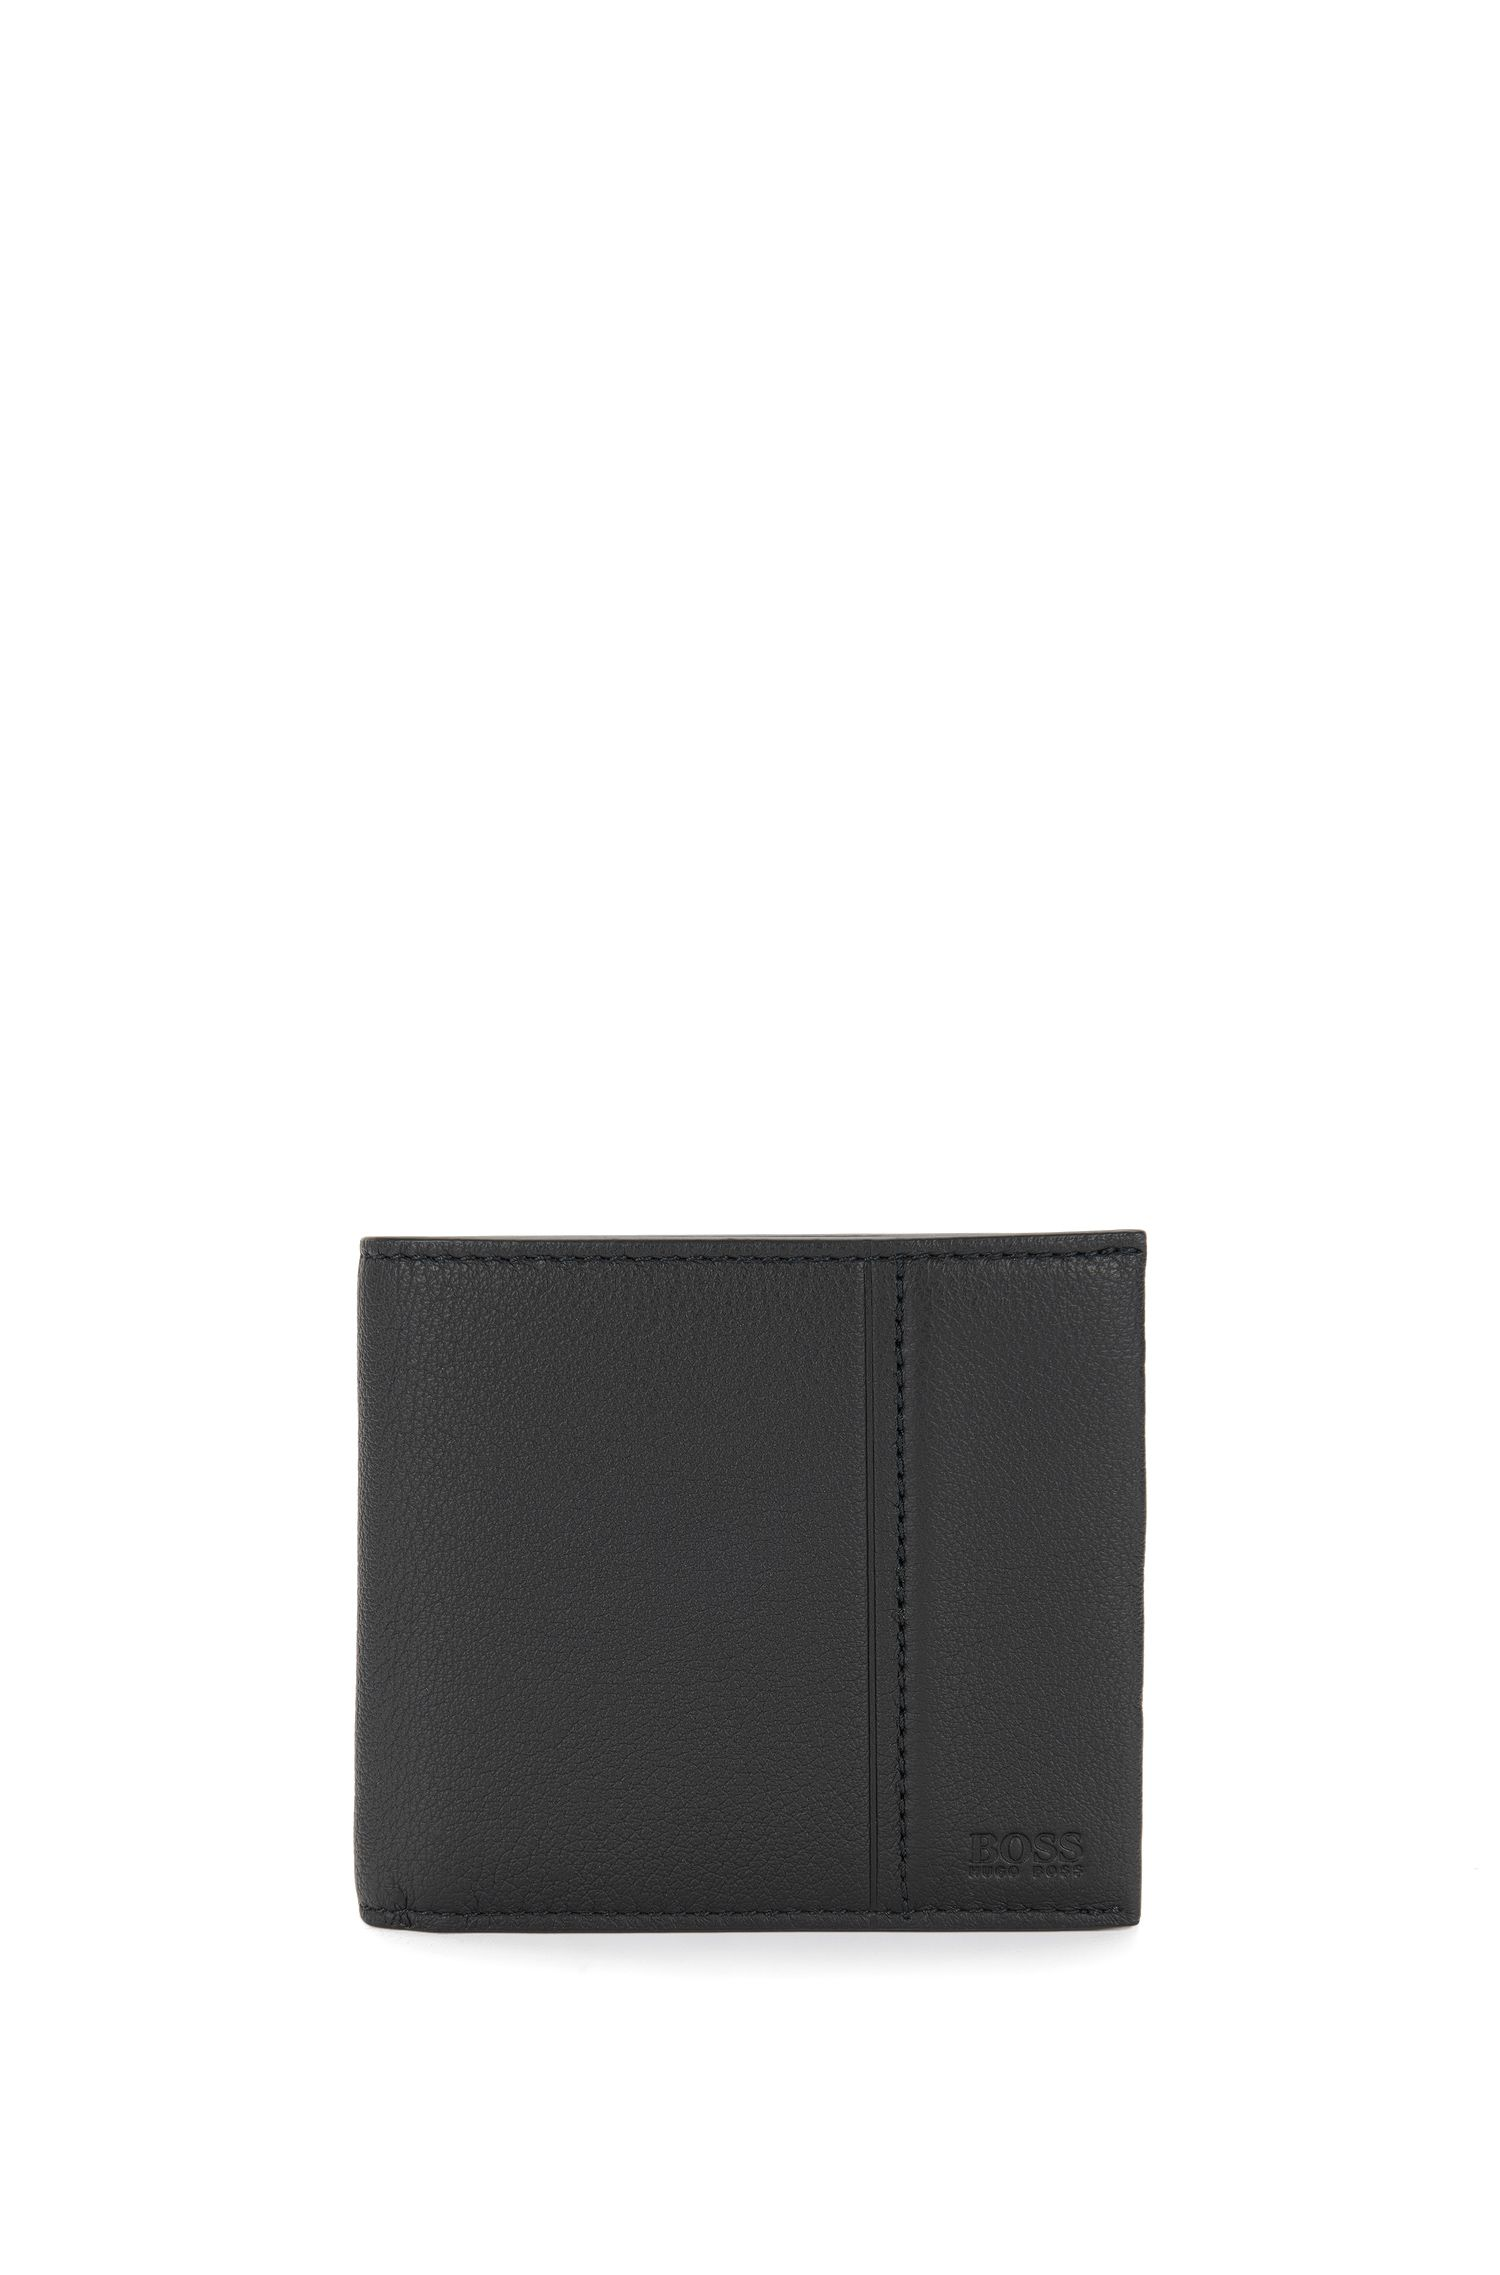 Leather bi-fold wallet with coin pouch